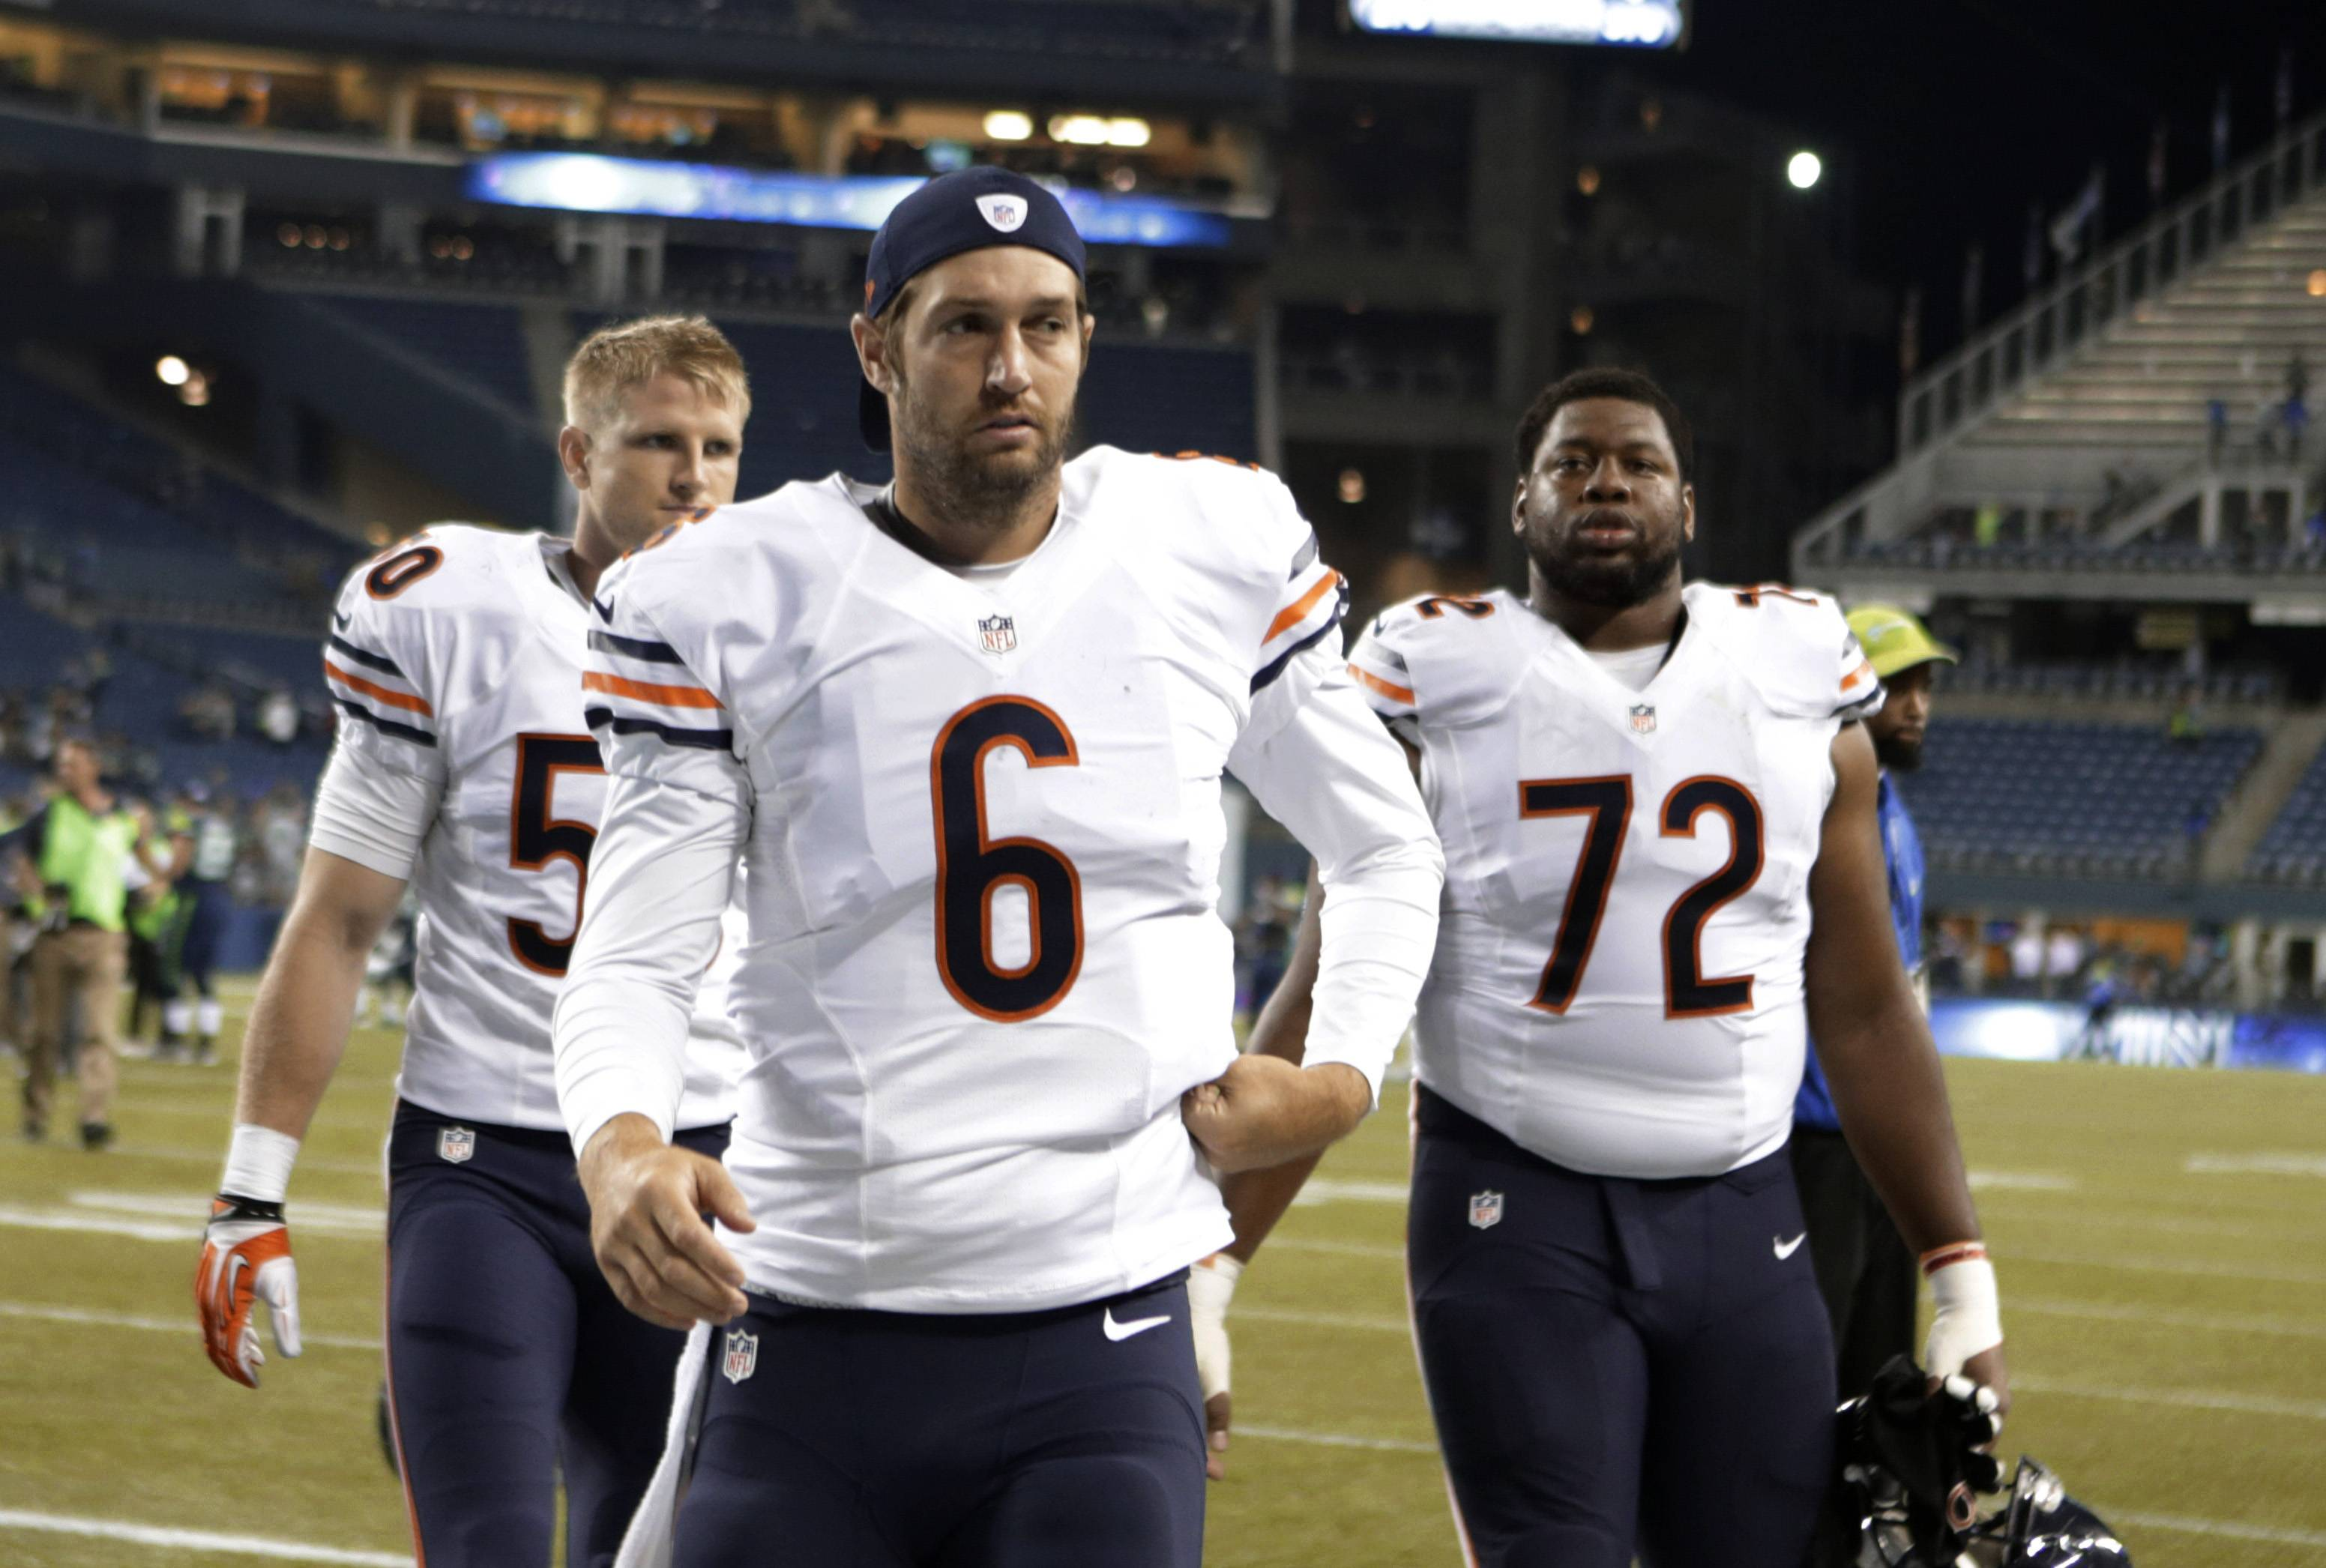 Is quarterback Jay Cutler finally ready to lead to Bears to a long playoff run this season?